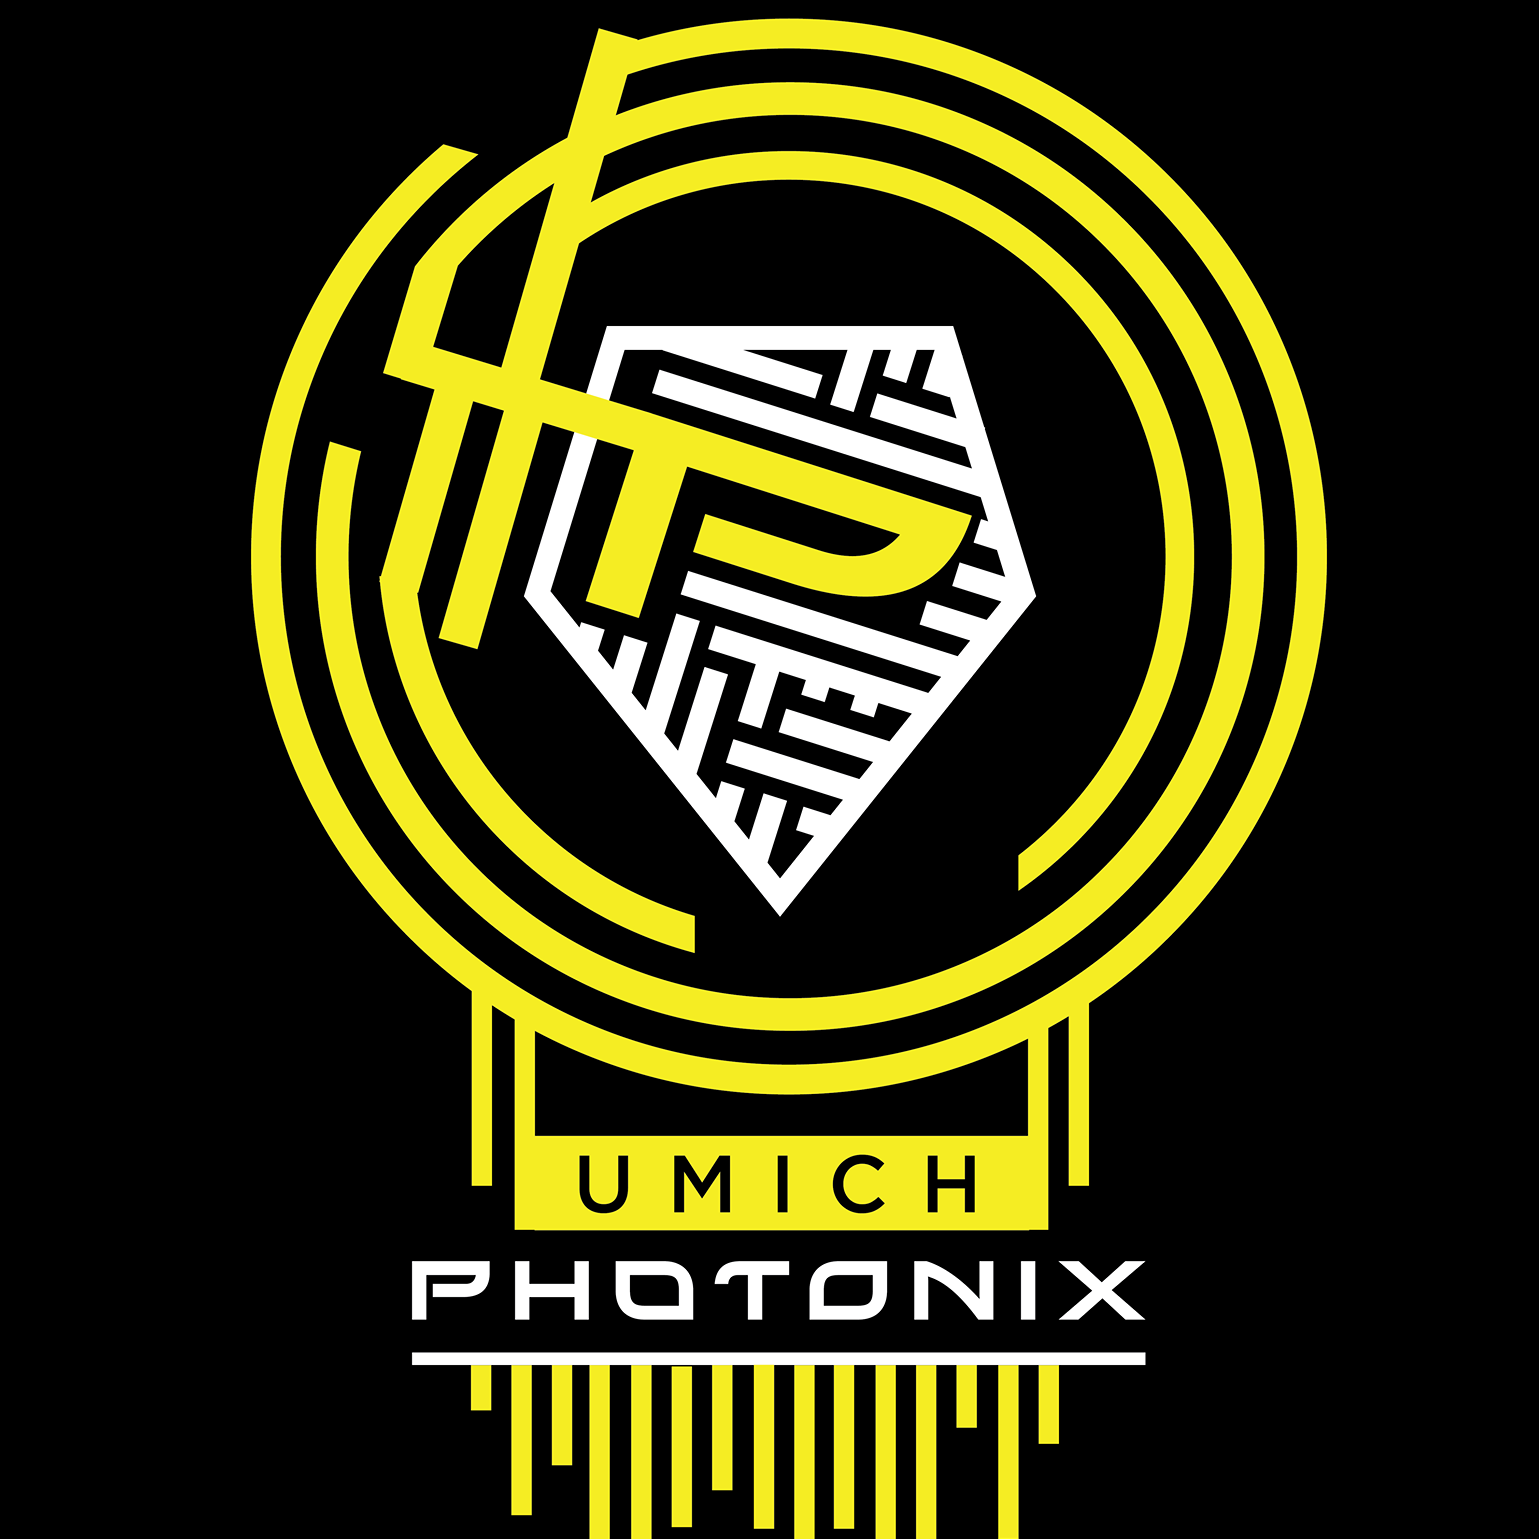 Photonix   Photonix is a new glowsticking group formed at the University of Michigan. It looks to inspire with mind-blowing performances at events and shows!